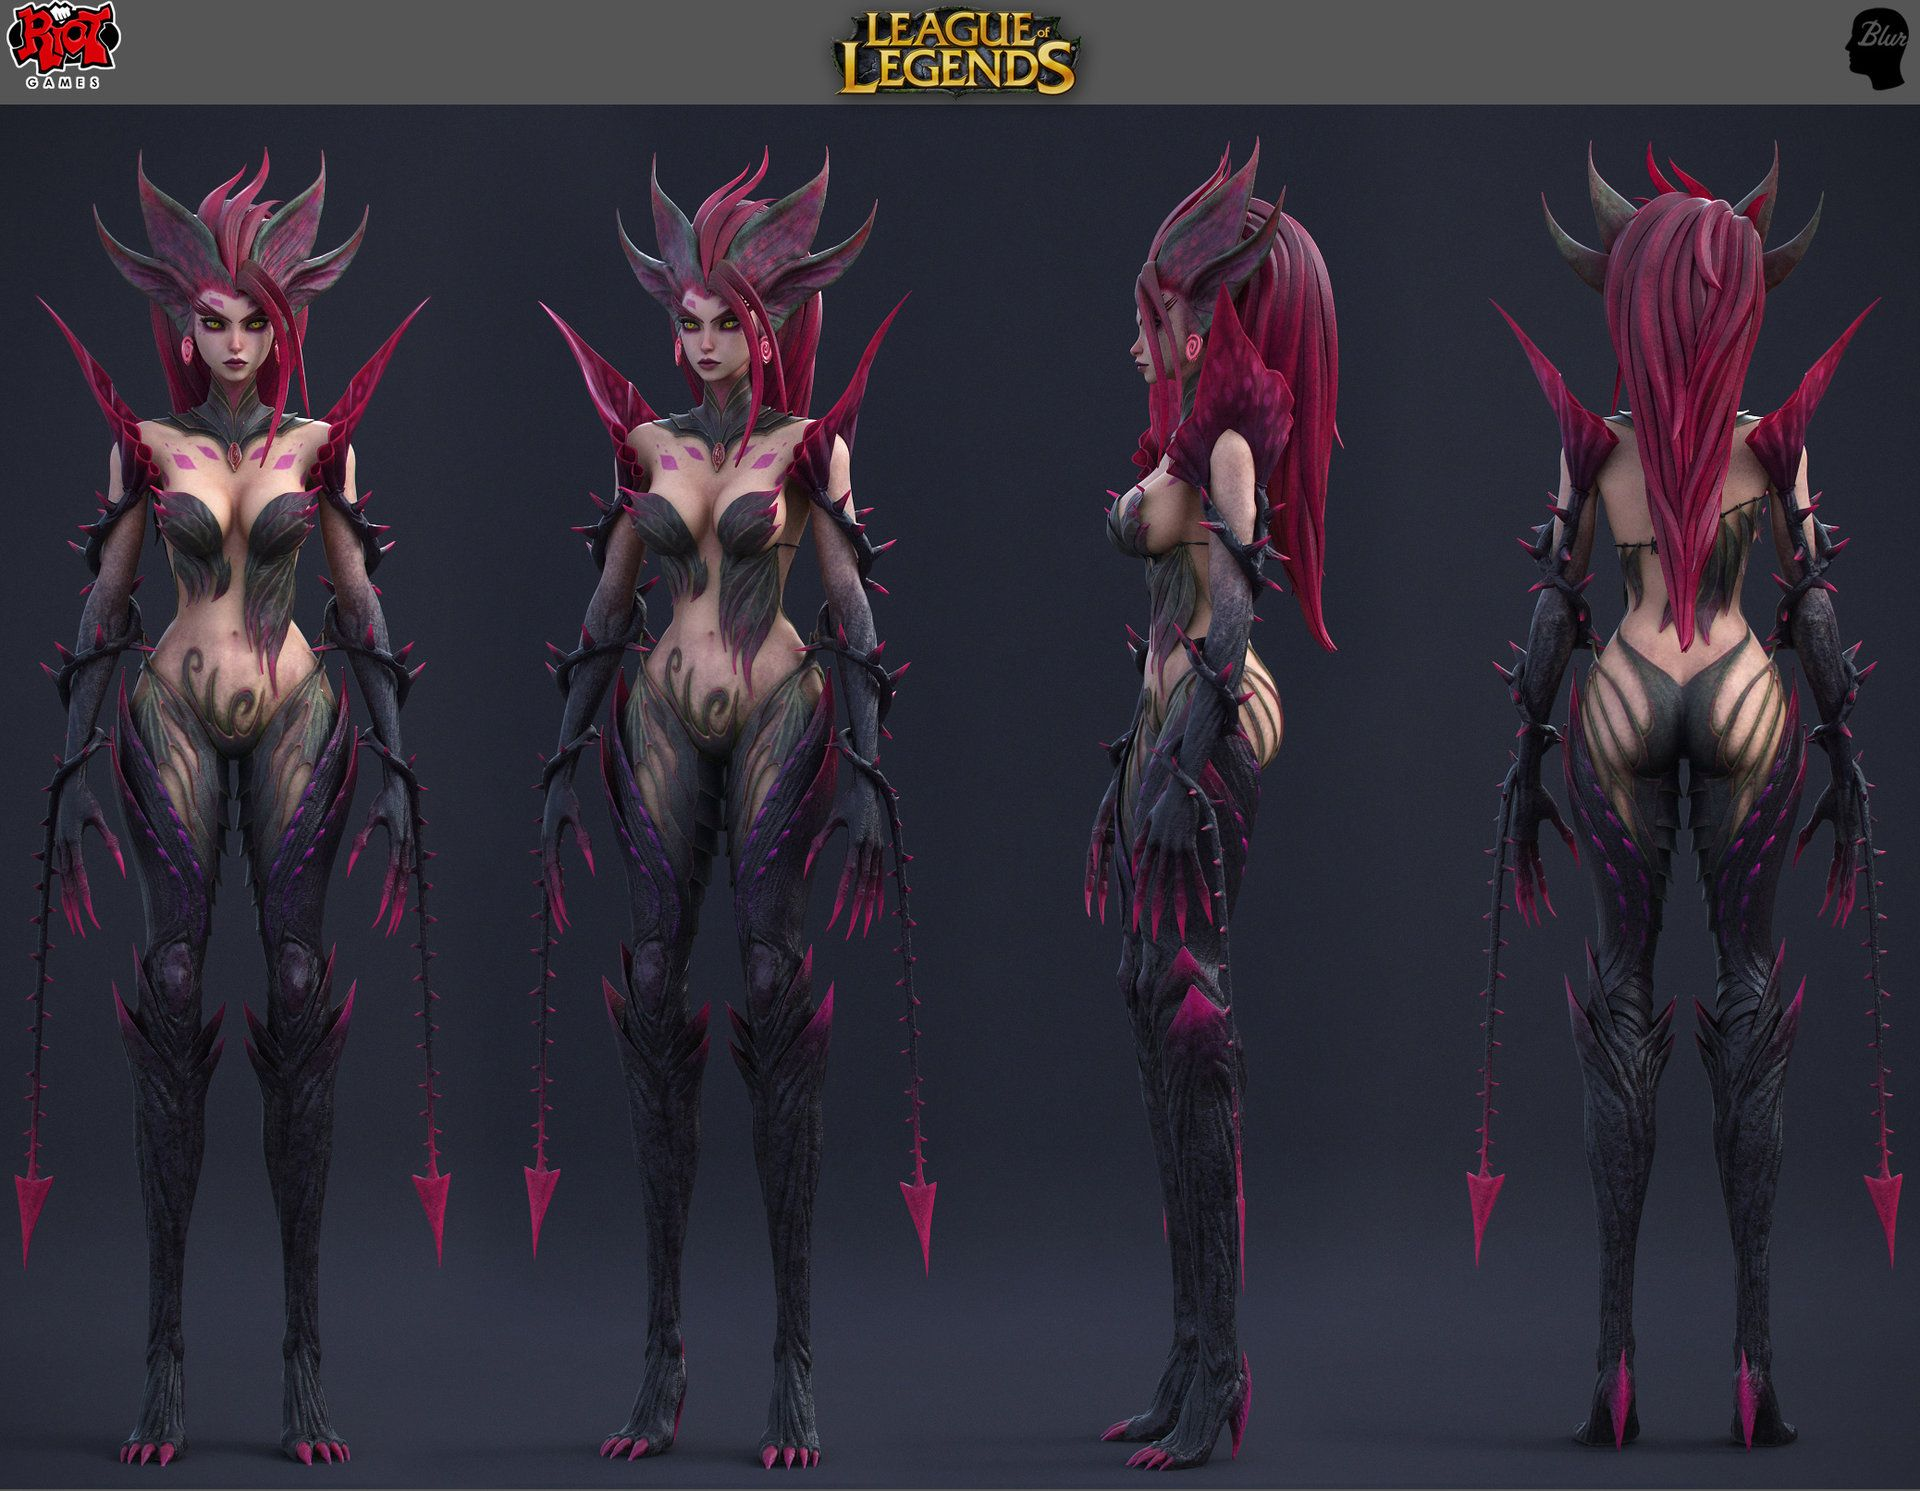 Xayah Character Design : Artstation league of legends zyra nicolas collings d